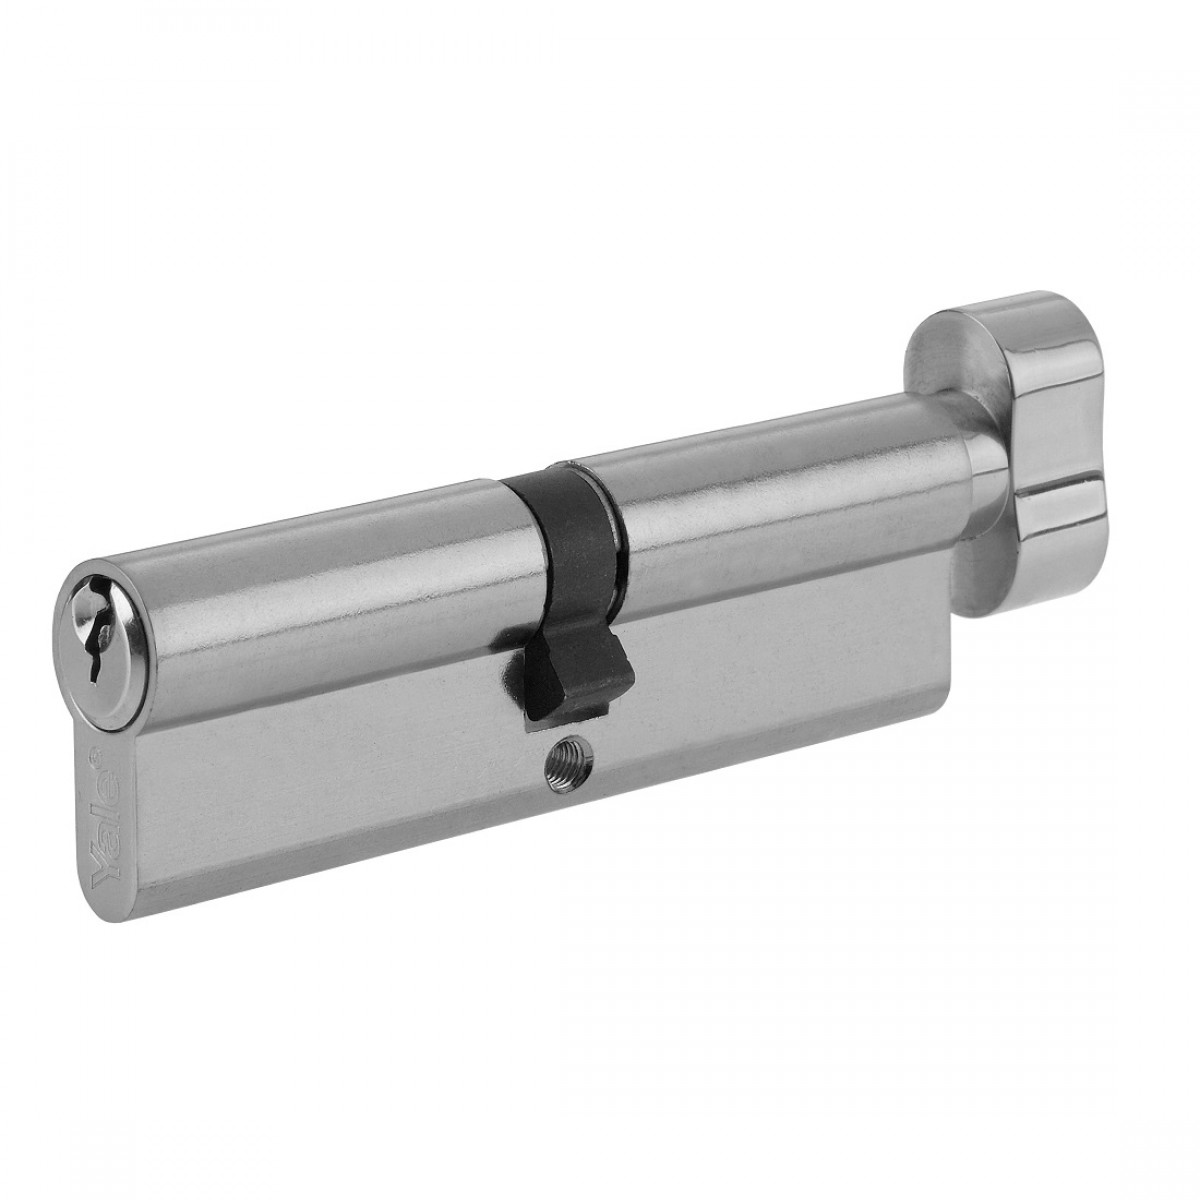 yale bs standard nickel high security euro profile cylinder 100mm//95mm NEW